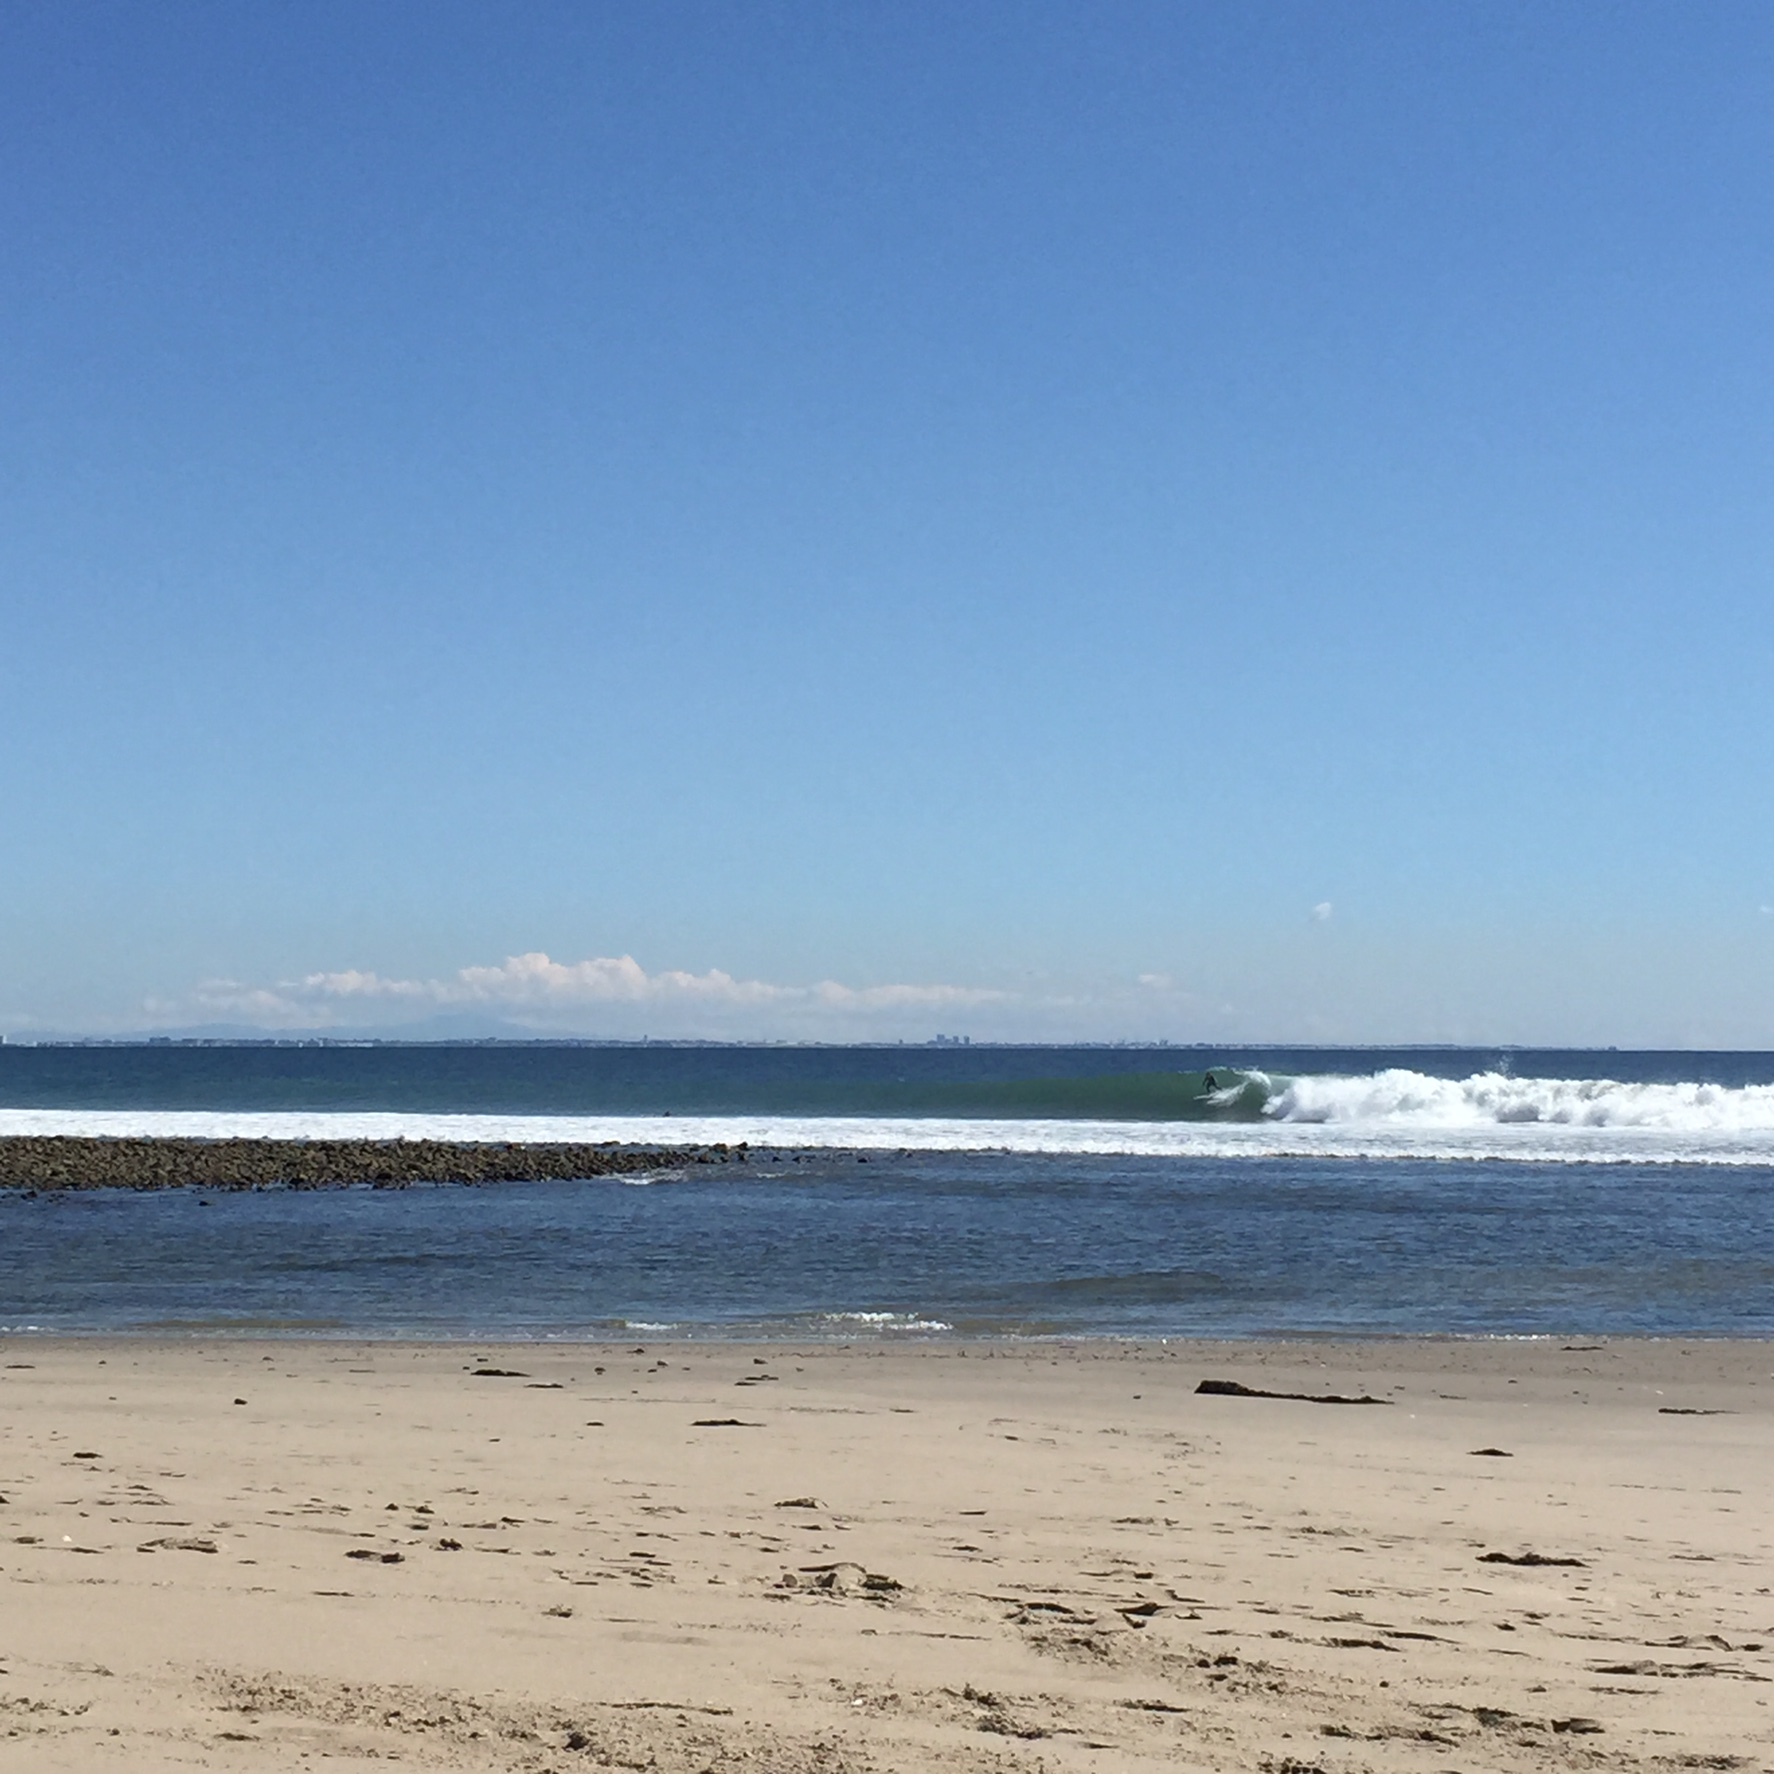 The iconic Malibu-second point during a recent swell.